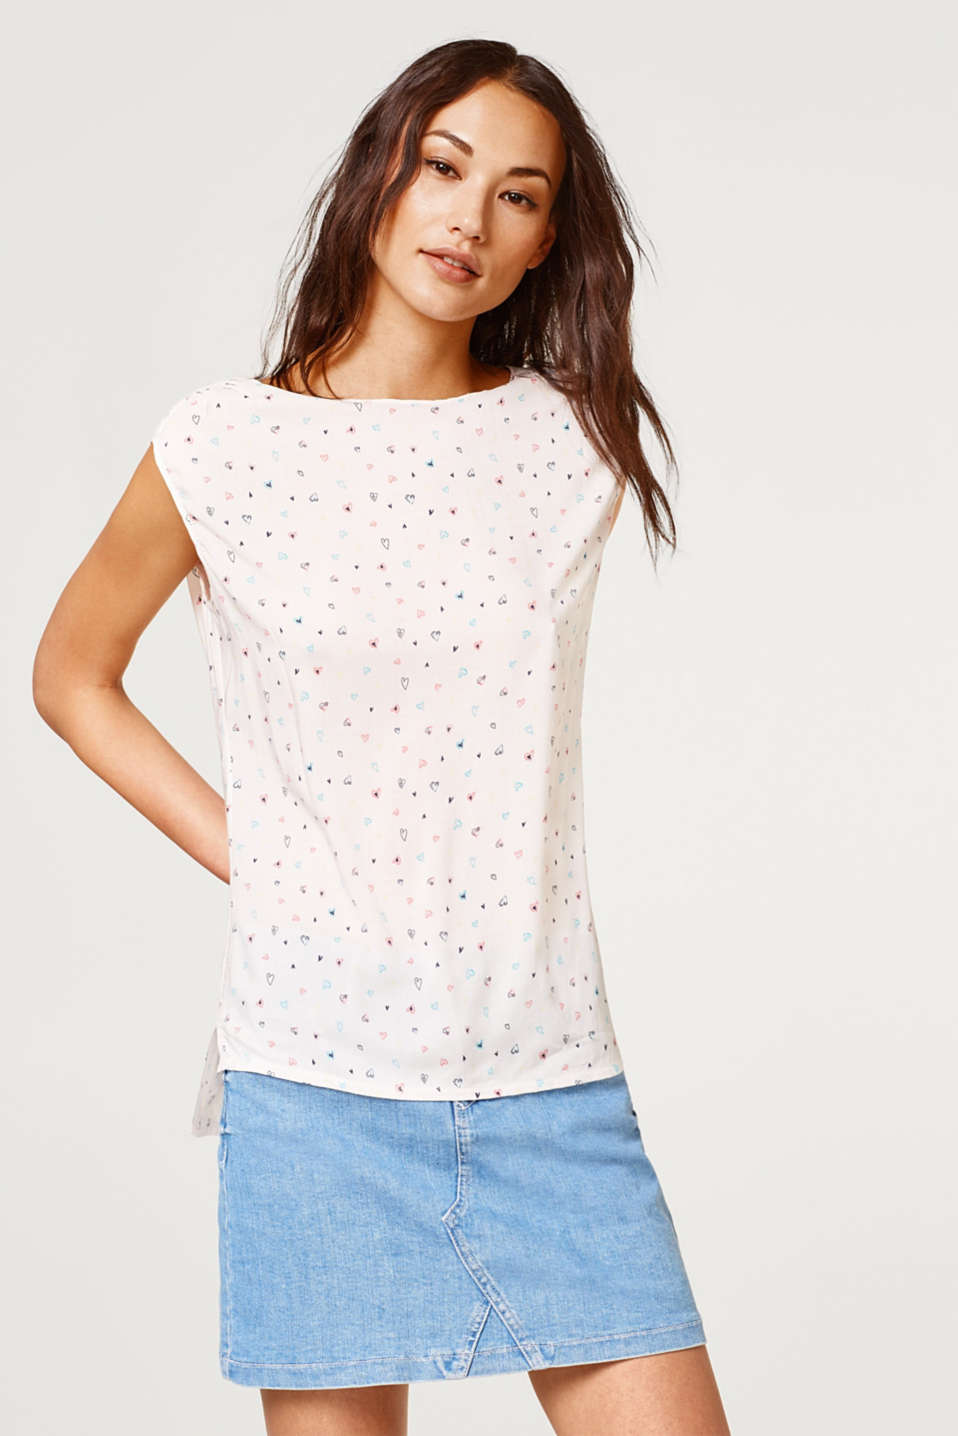 Esprit - Printed blouse top with a high-low hem